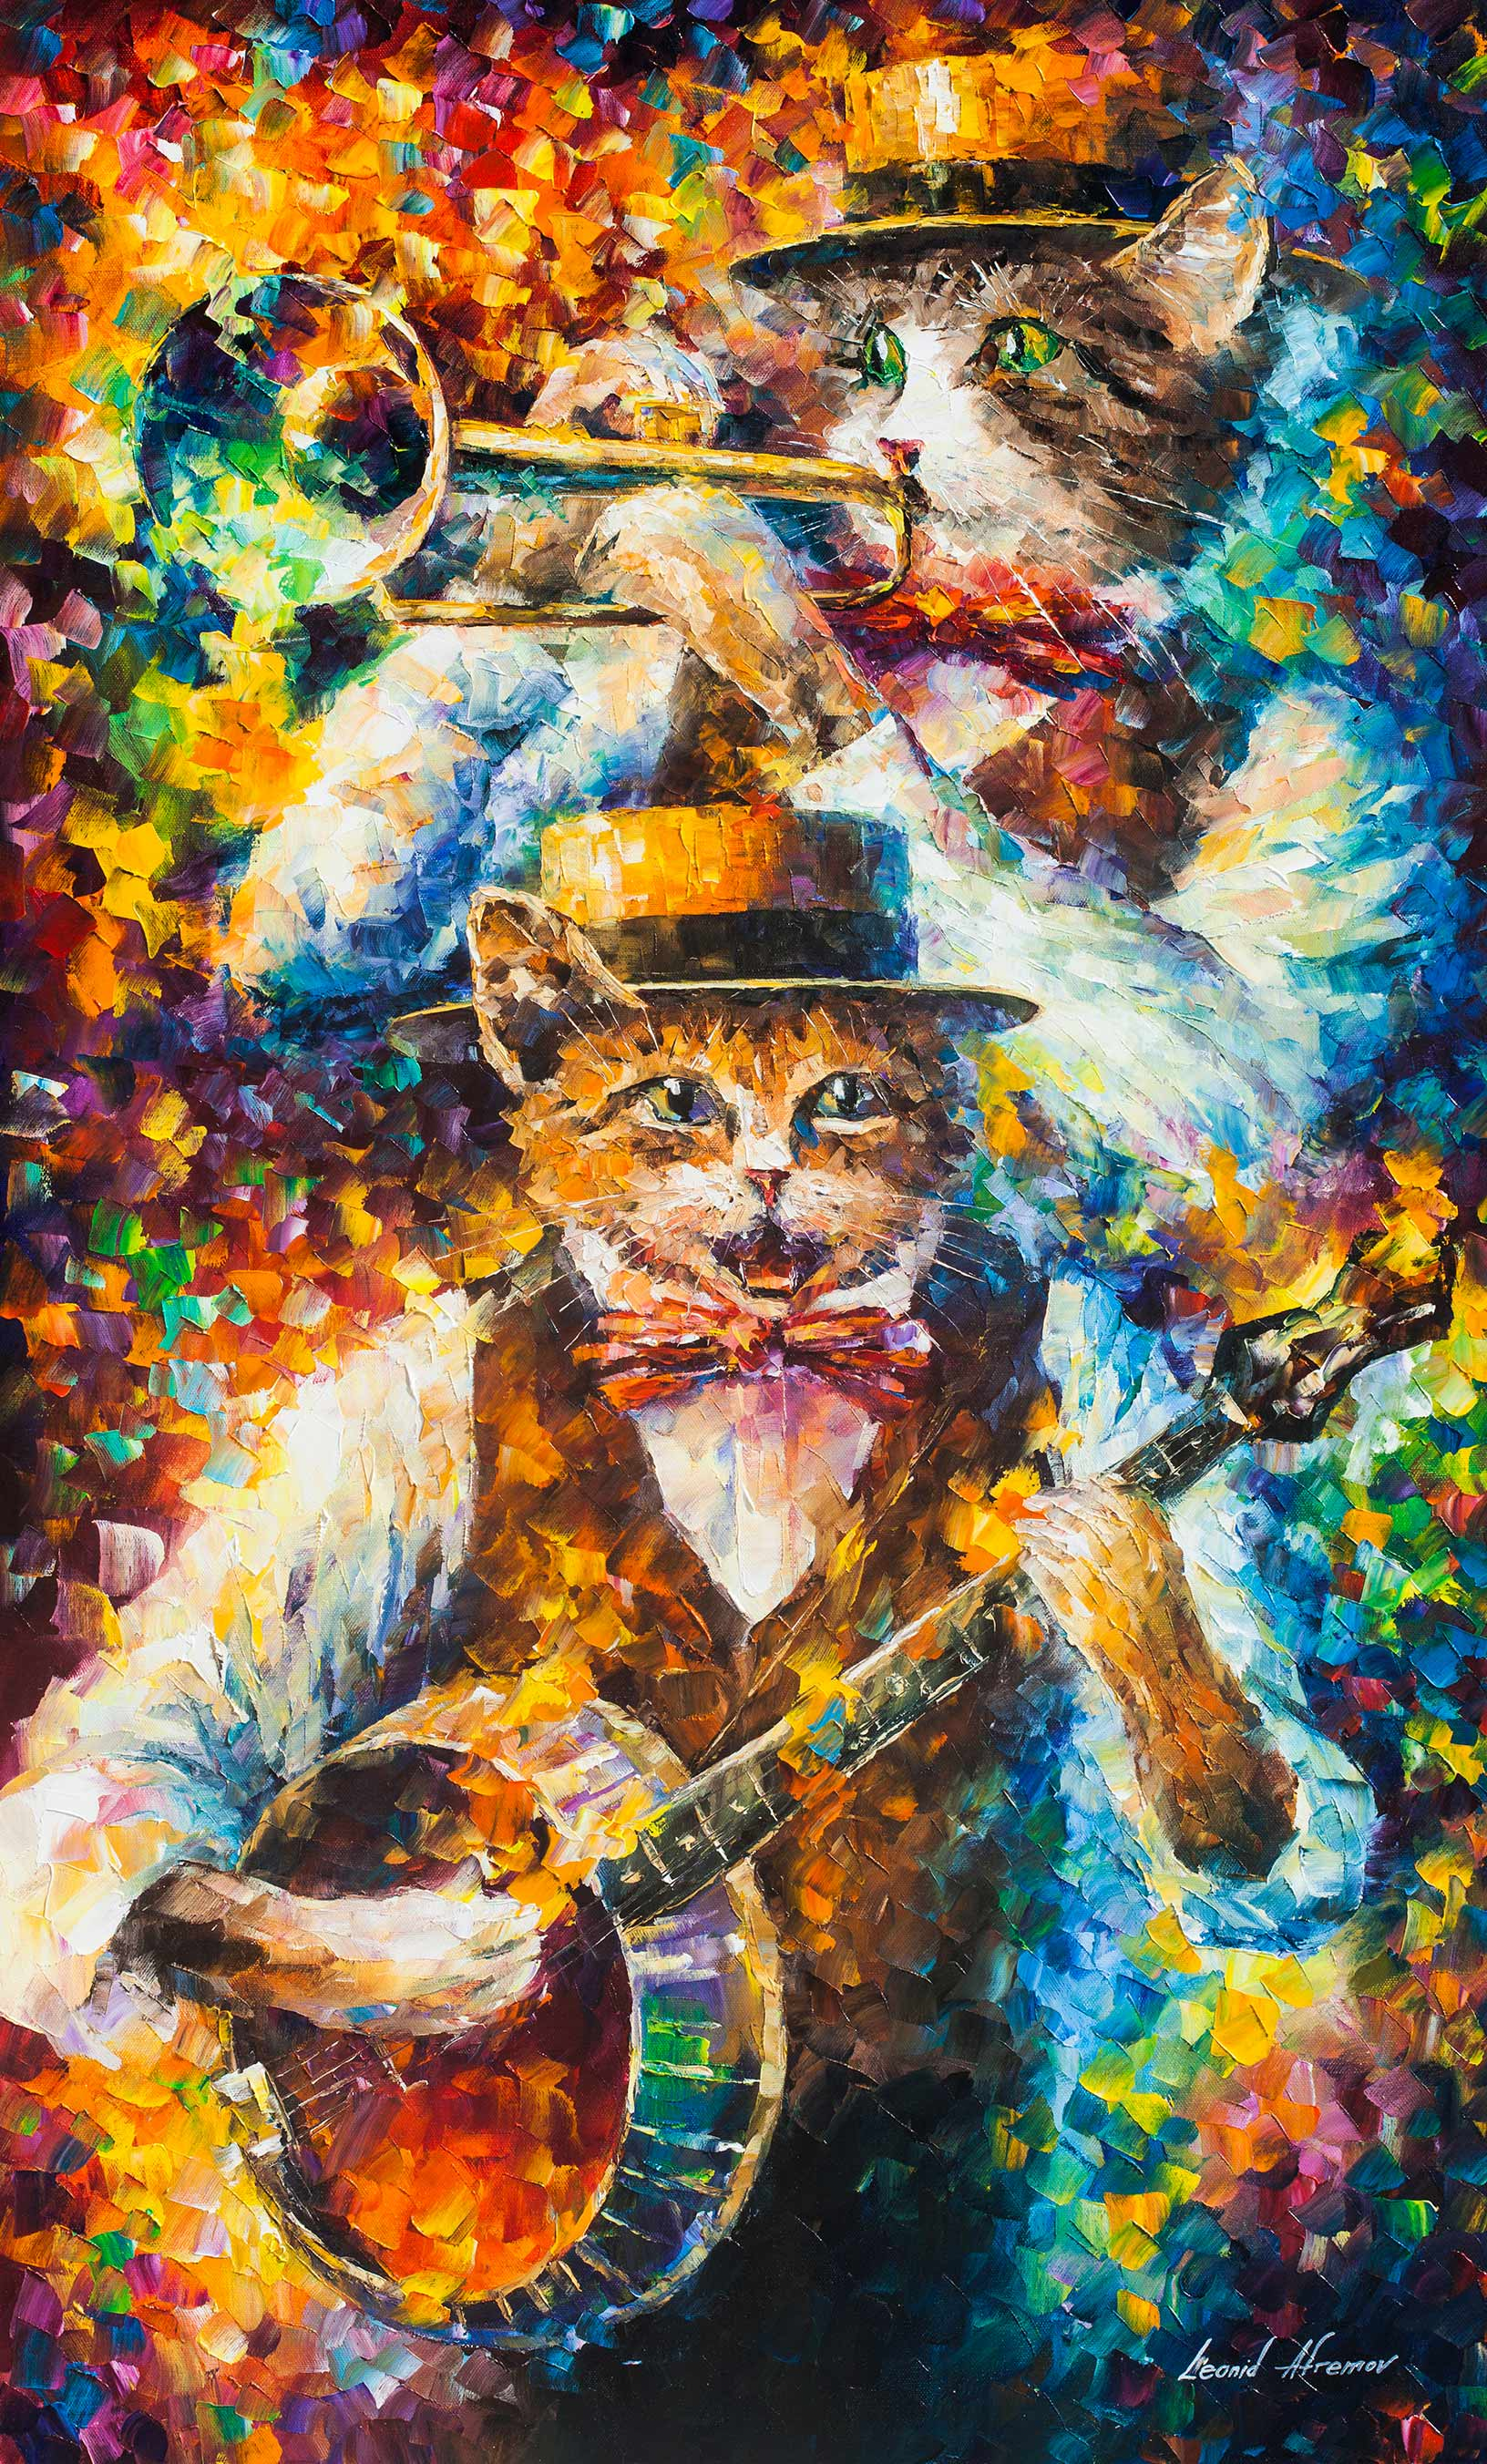 Banjo Music of Cats